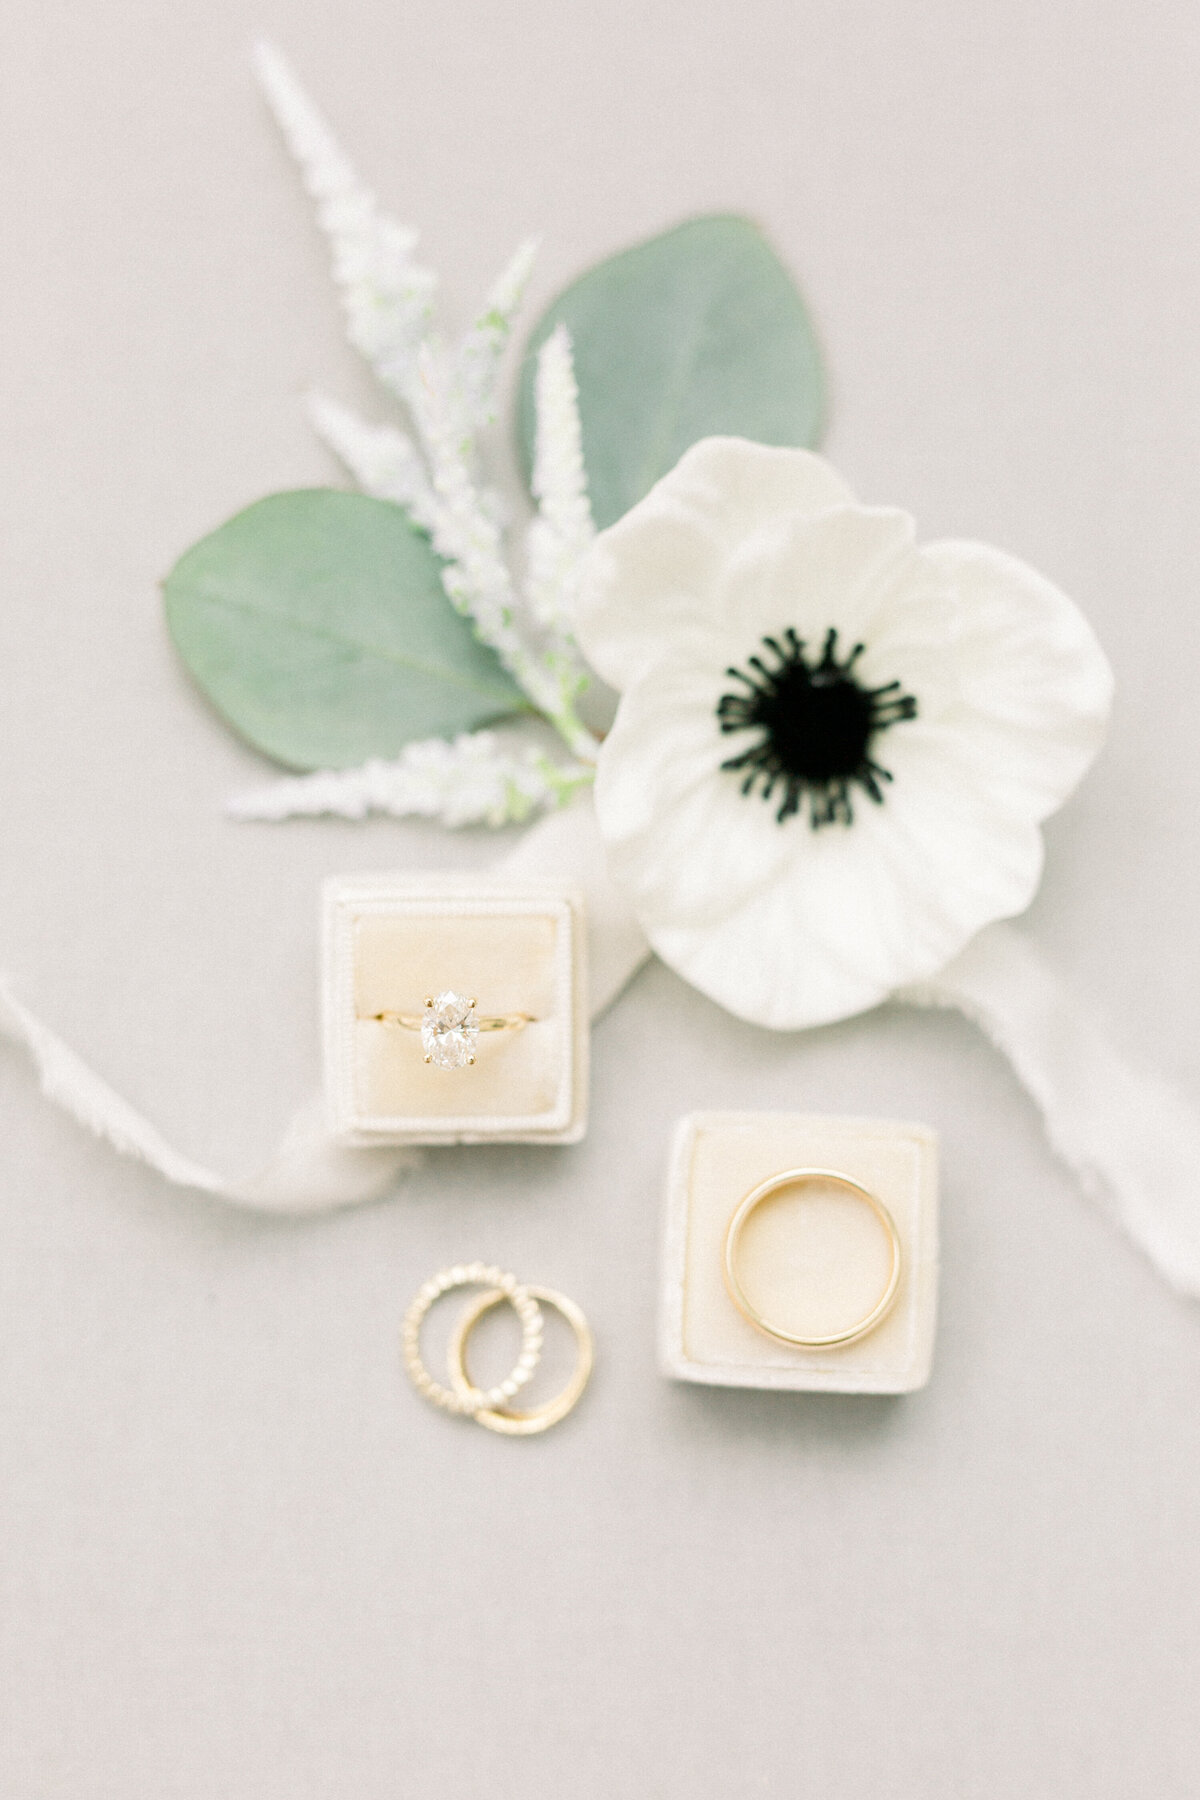 Minnesota wedding photographer, Minneapolis wedding photographer, Minnesota luxury photographer, minnesota light and airy photographer, minnesota light and airy wedding photographer, wedding ring